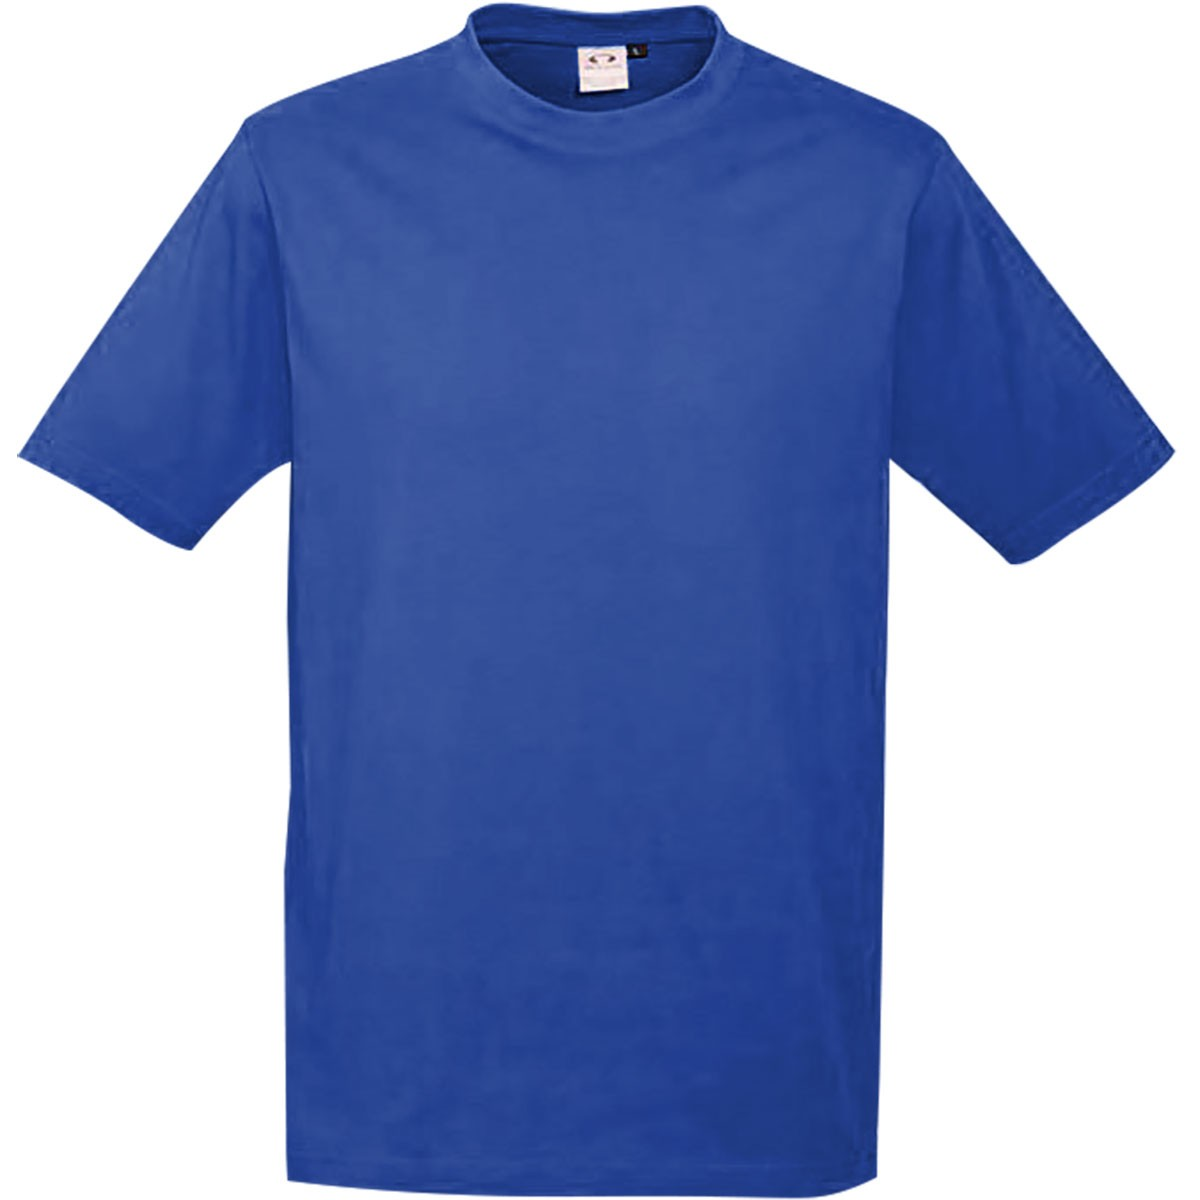 Kettlebell University T Shirt: Biz Collection T-Shirt Royal Blue